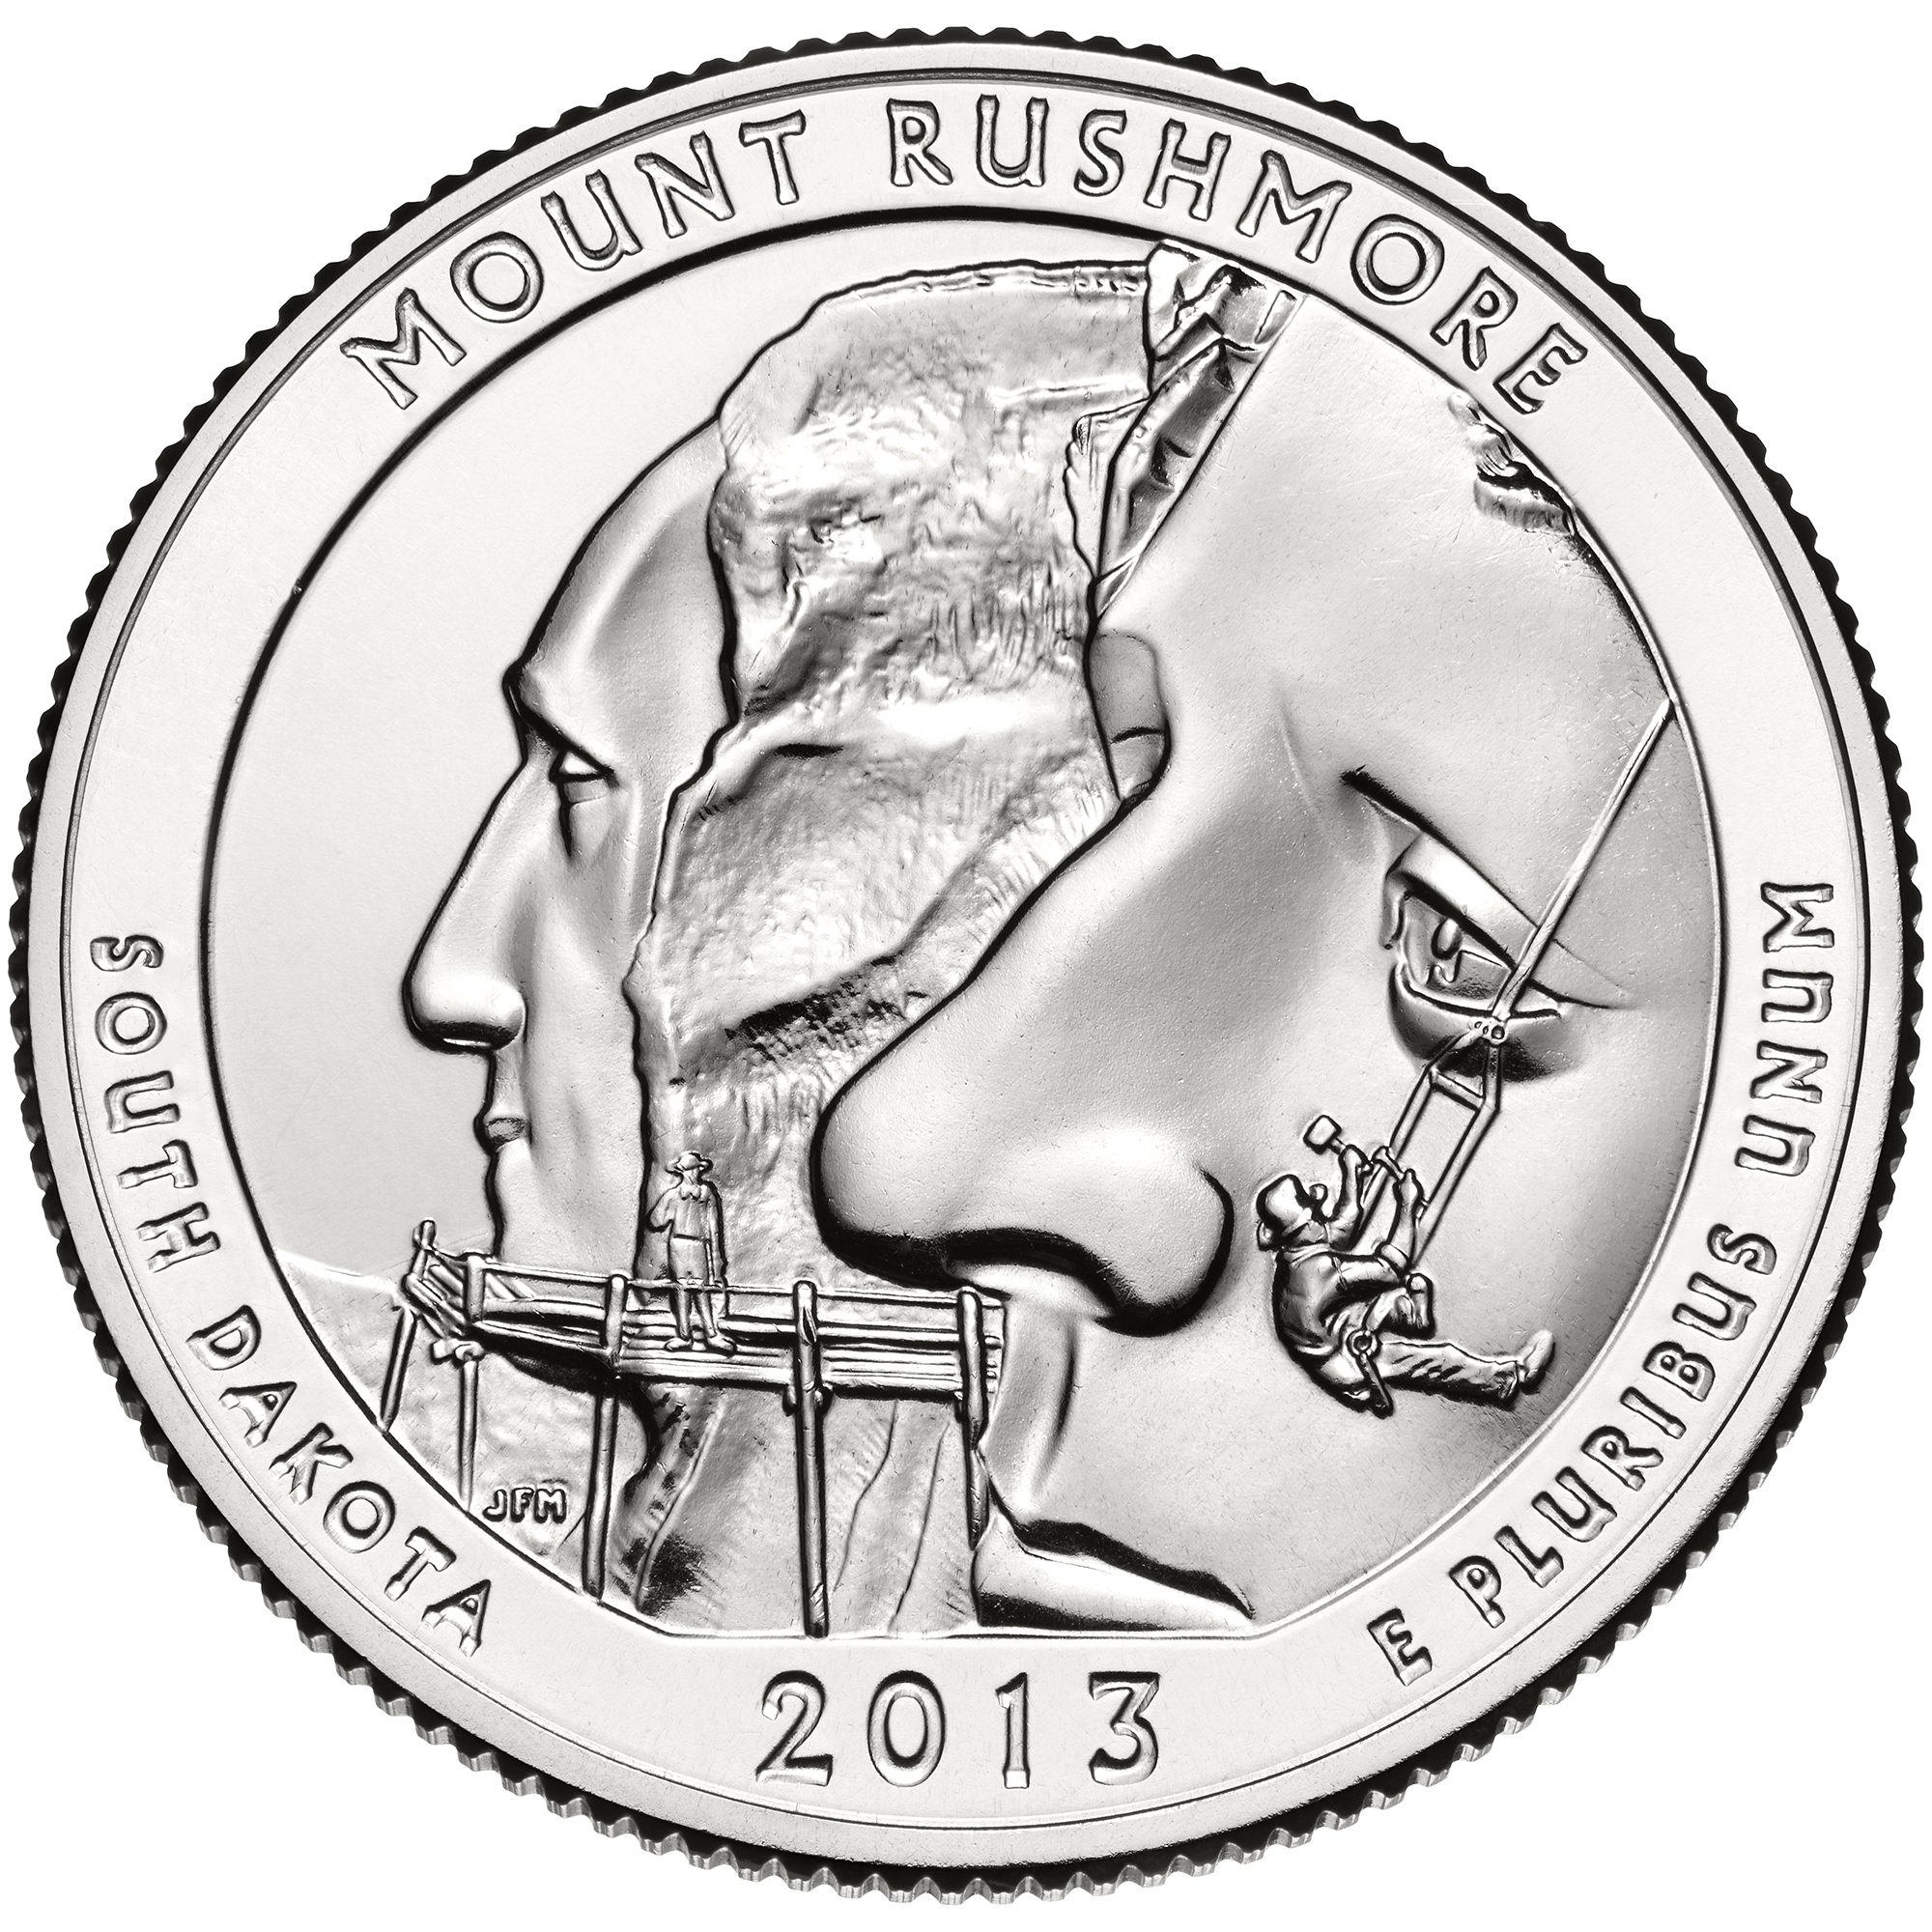 2013 Mount Rushmore South Dakota Quarter reverse sculpt